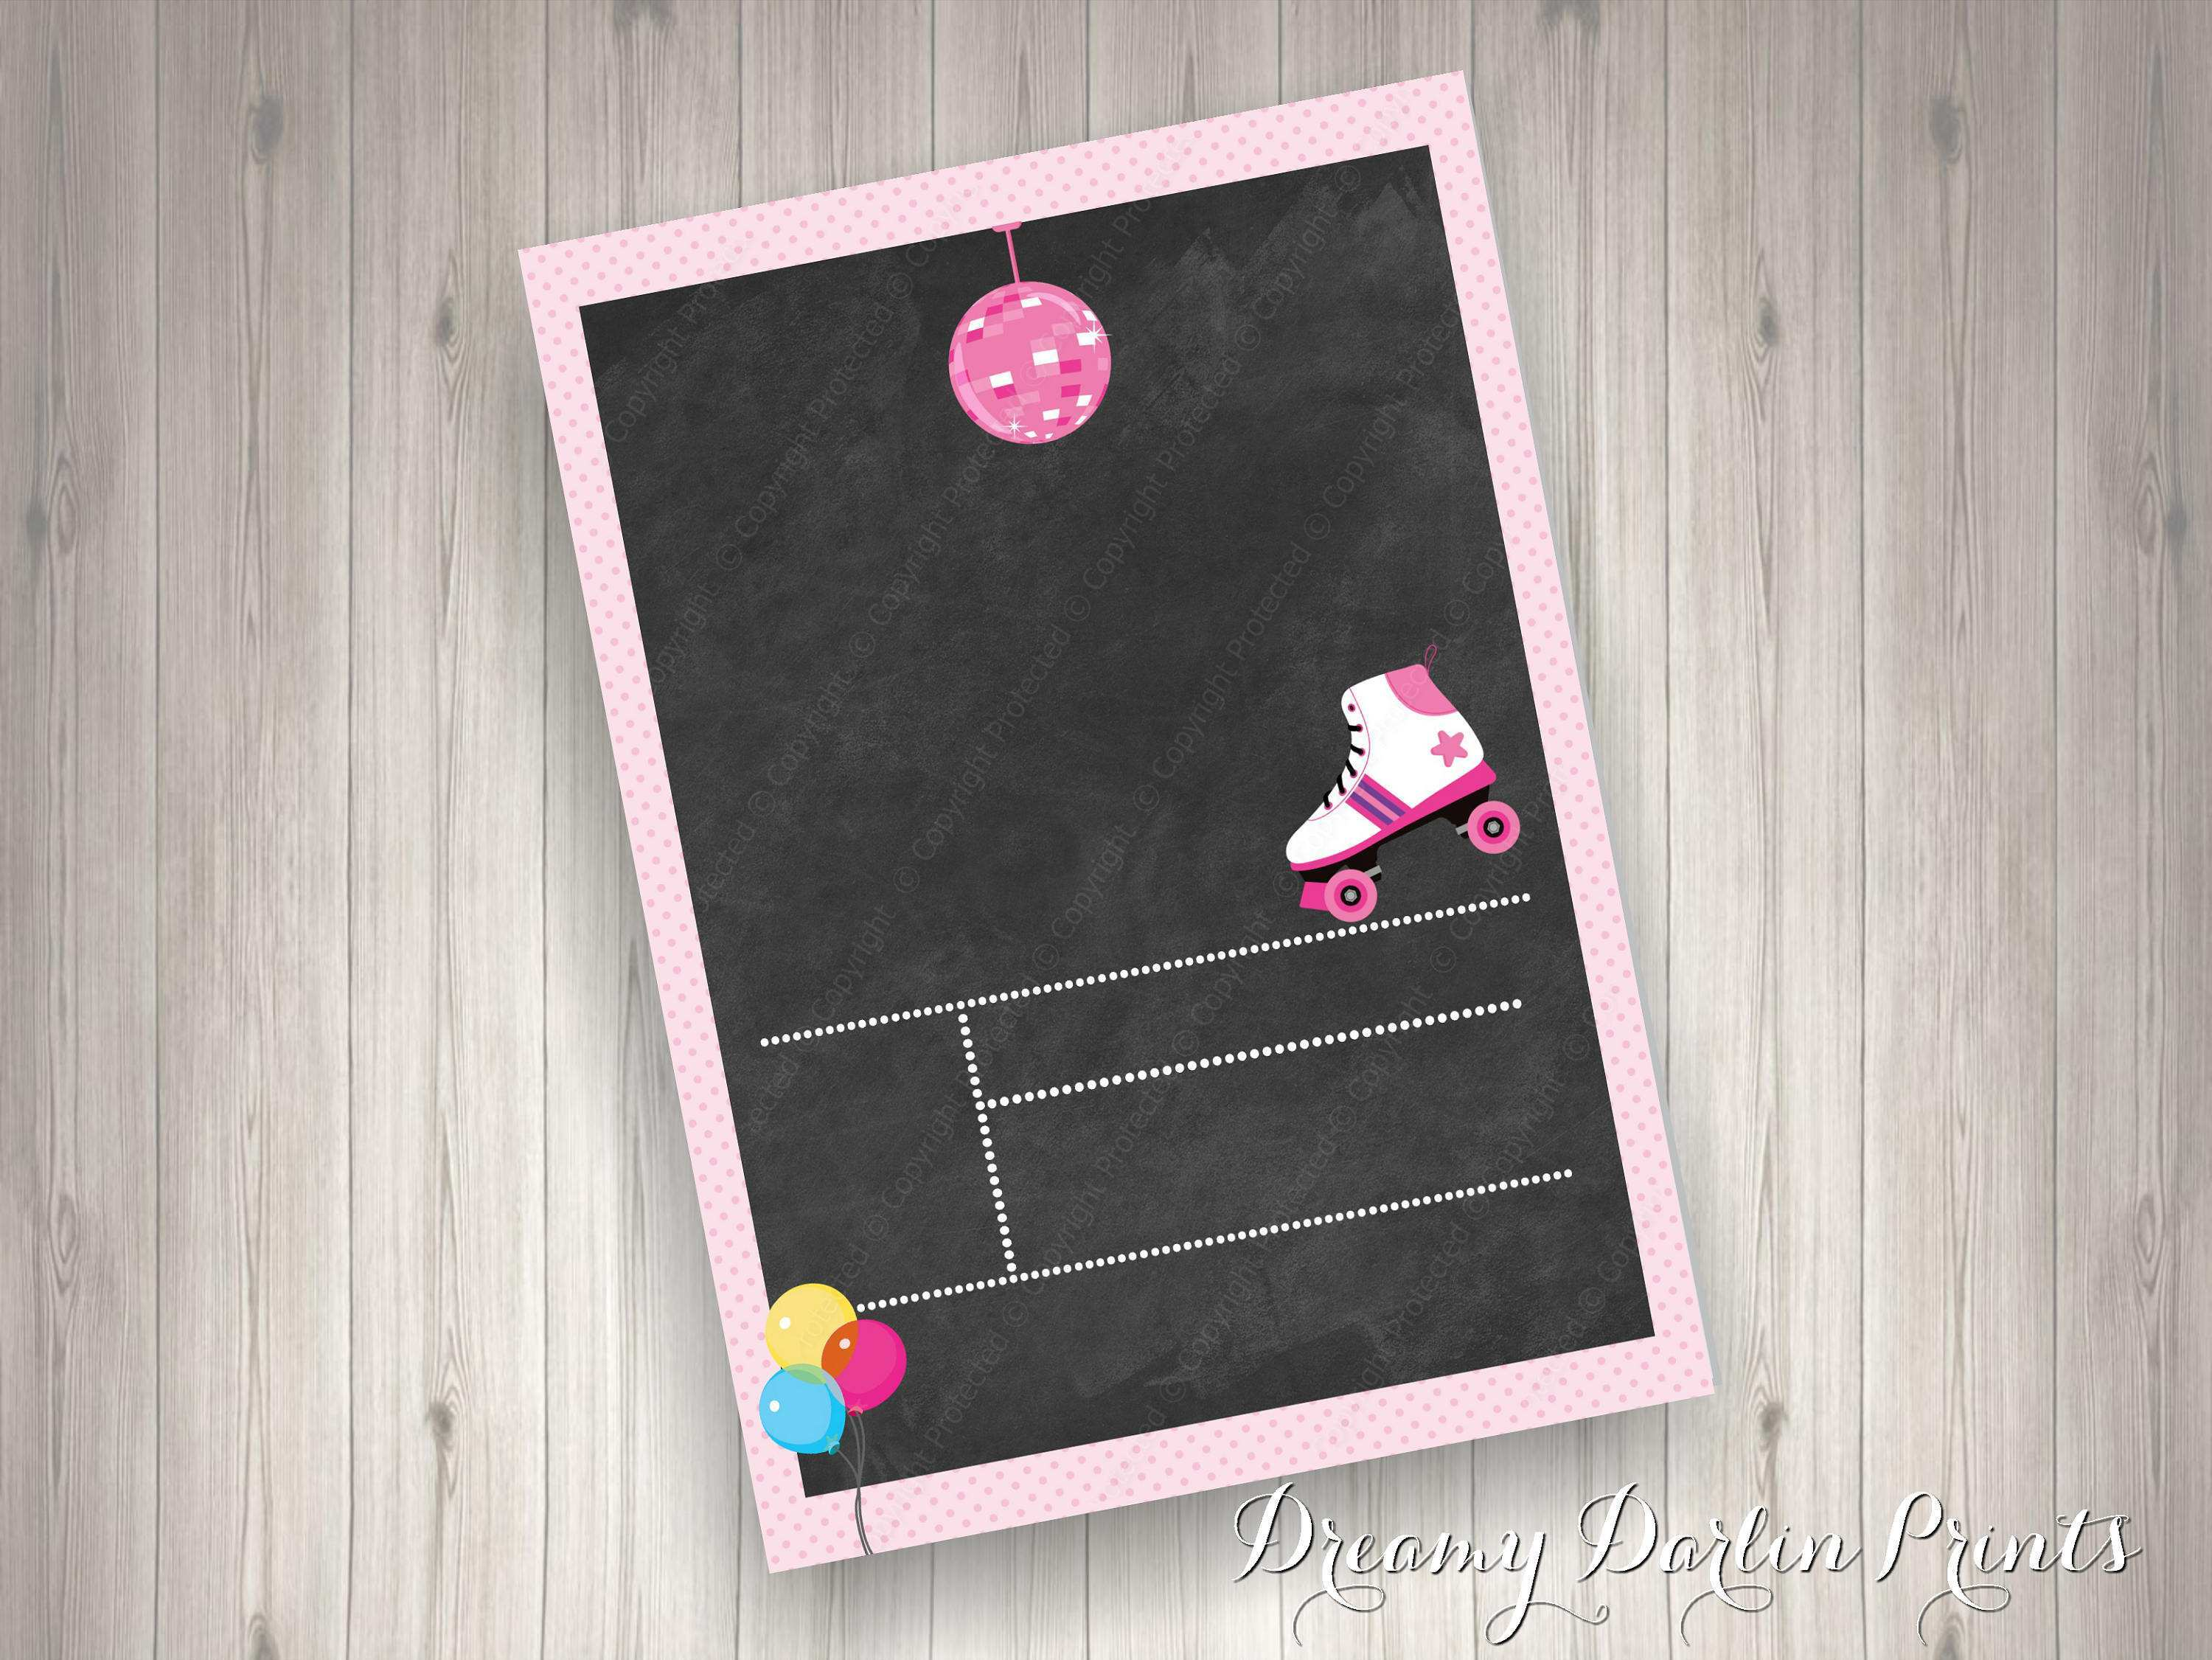 96 The Best Blank Chalkboard Invitation Template in Word for Blank Chalkboard Invitation Template